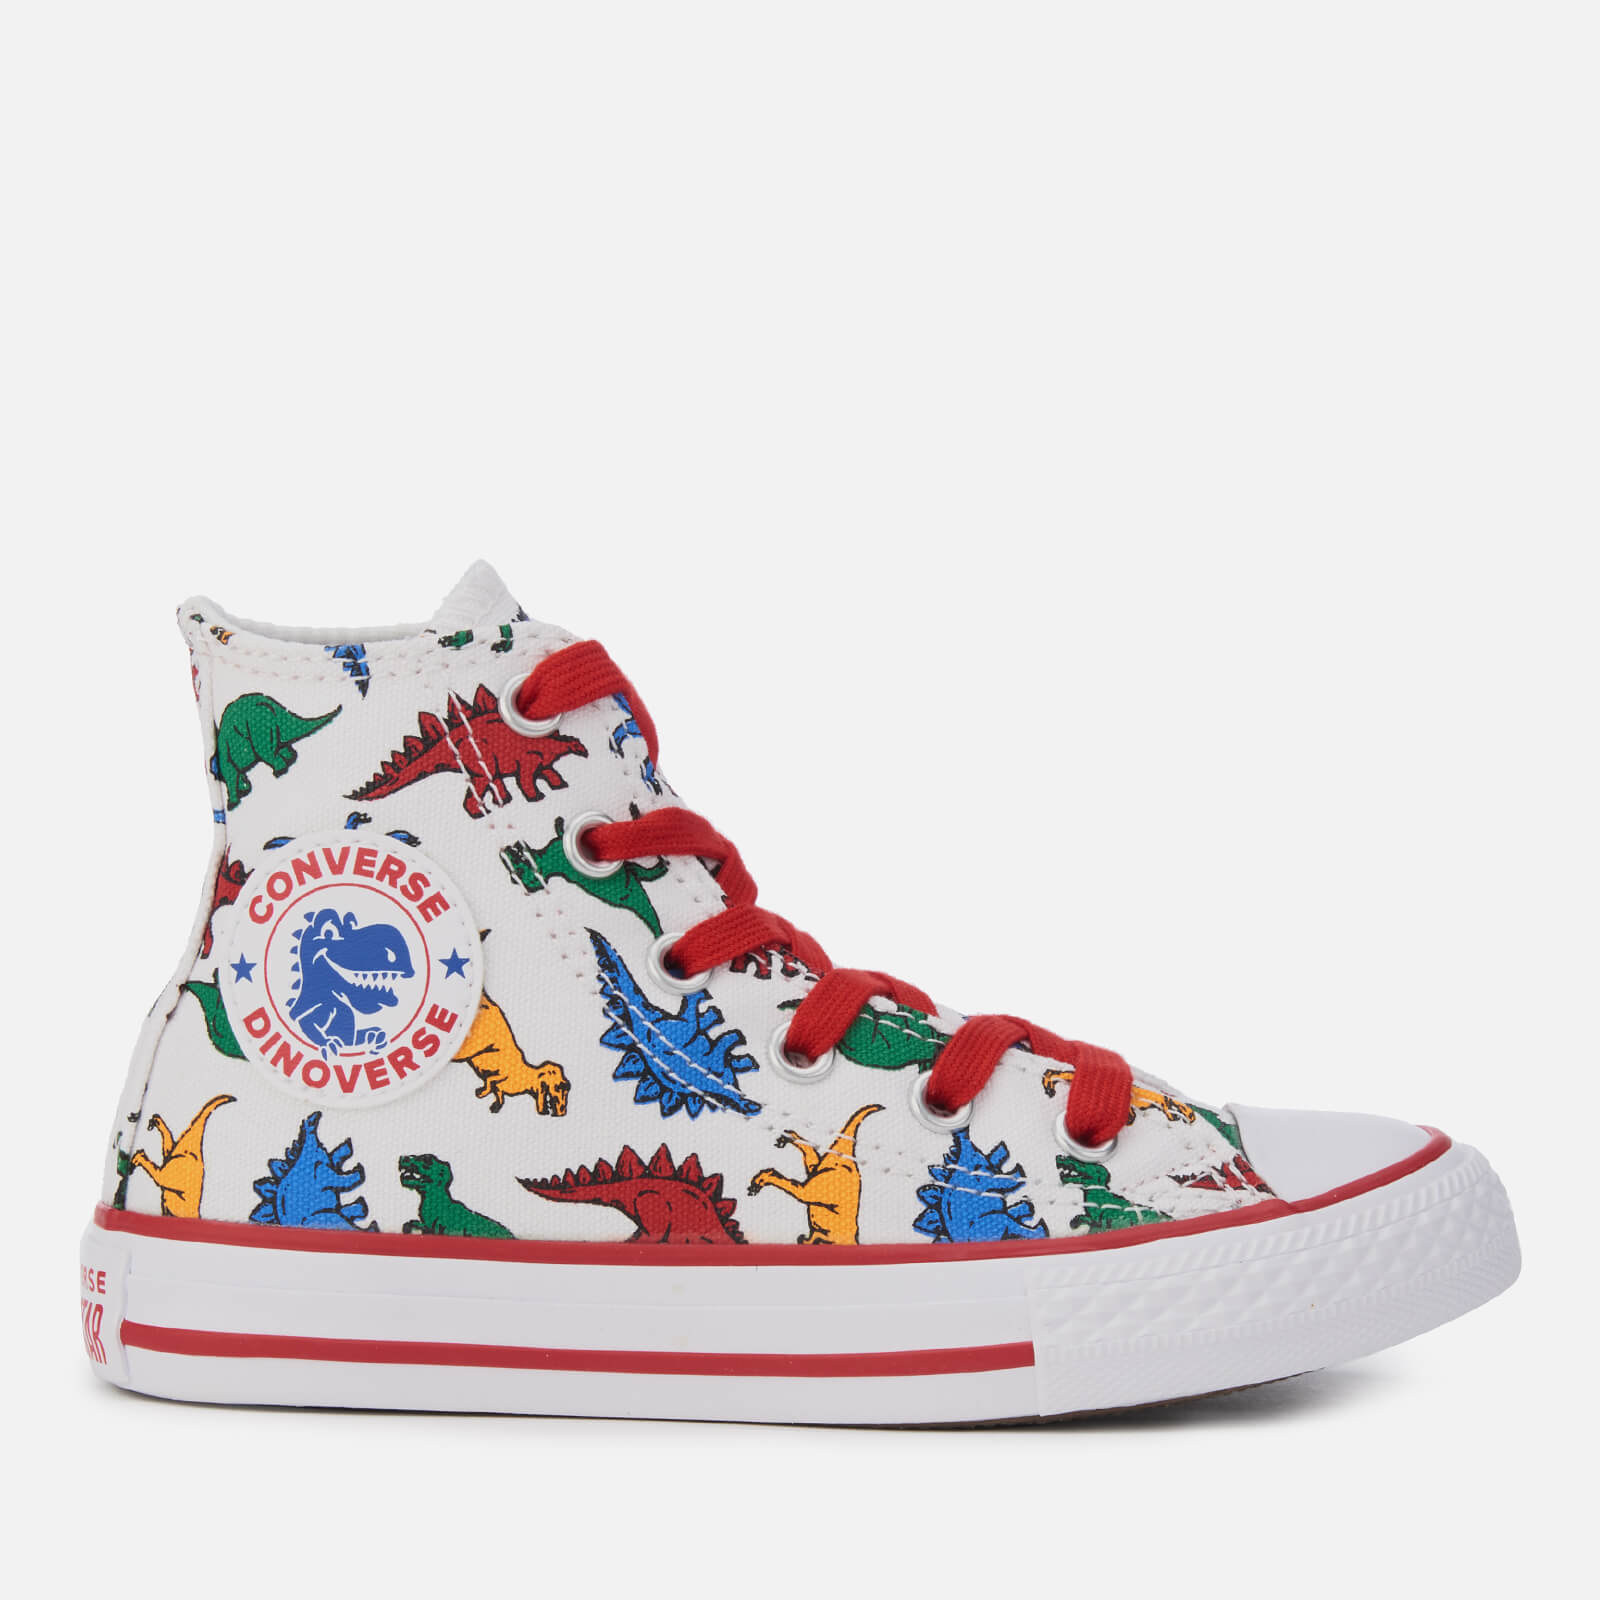 ac12d63c1c12ca Converse Kids  Chuck Taylor All Star Hi-Top Trainers - White Enamel  Red Totally Blue Junior Clothing